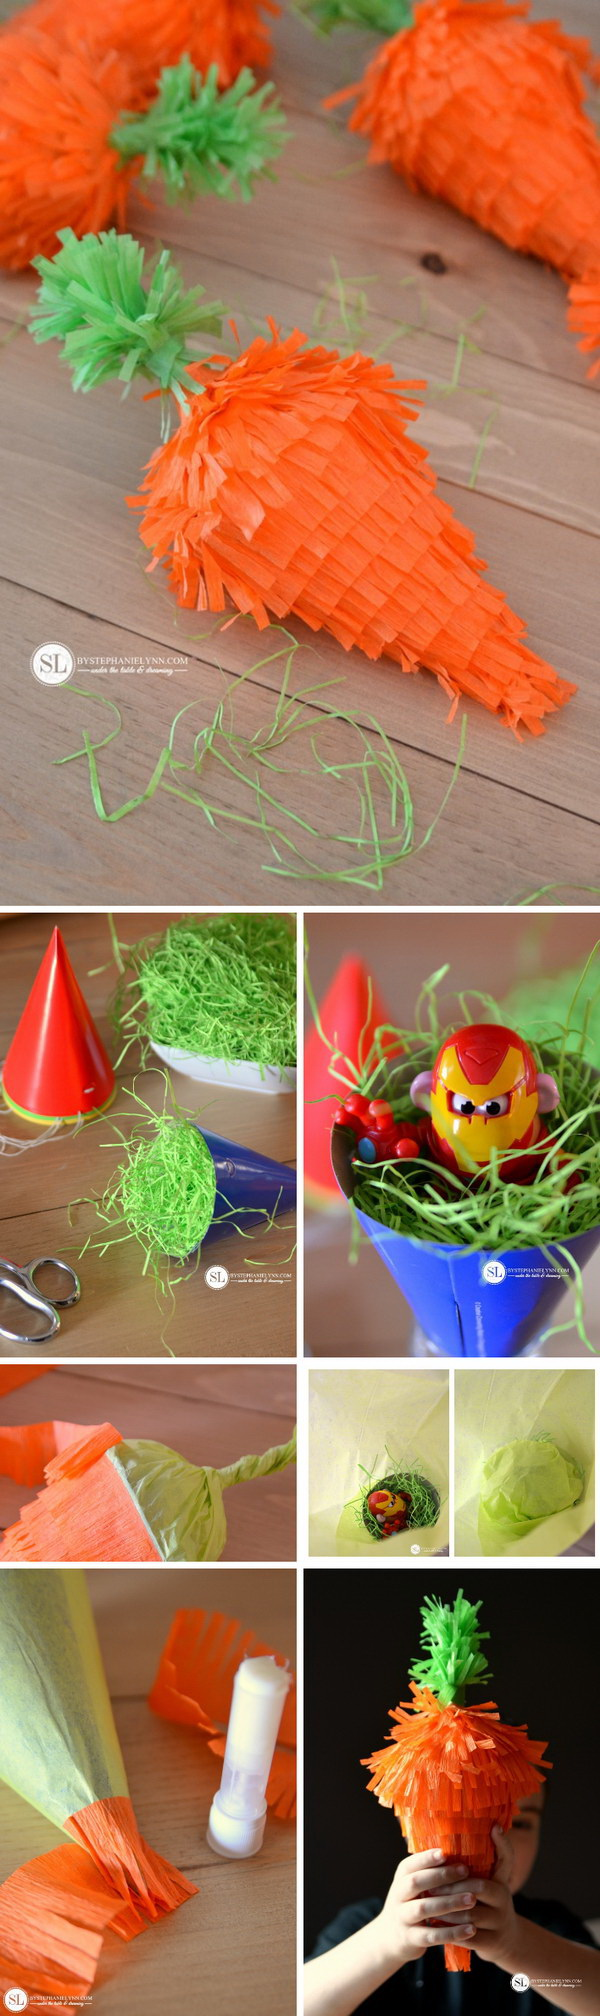 DIY Easter Decoration Ideas: DIY Mini Easter Carrot Pinatas.